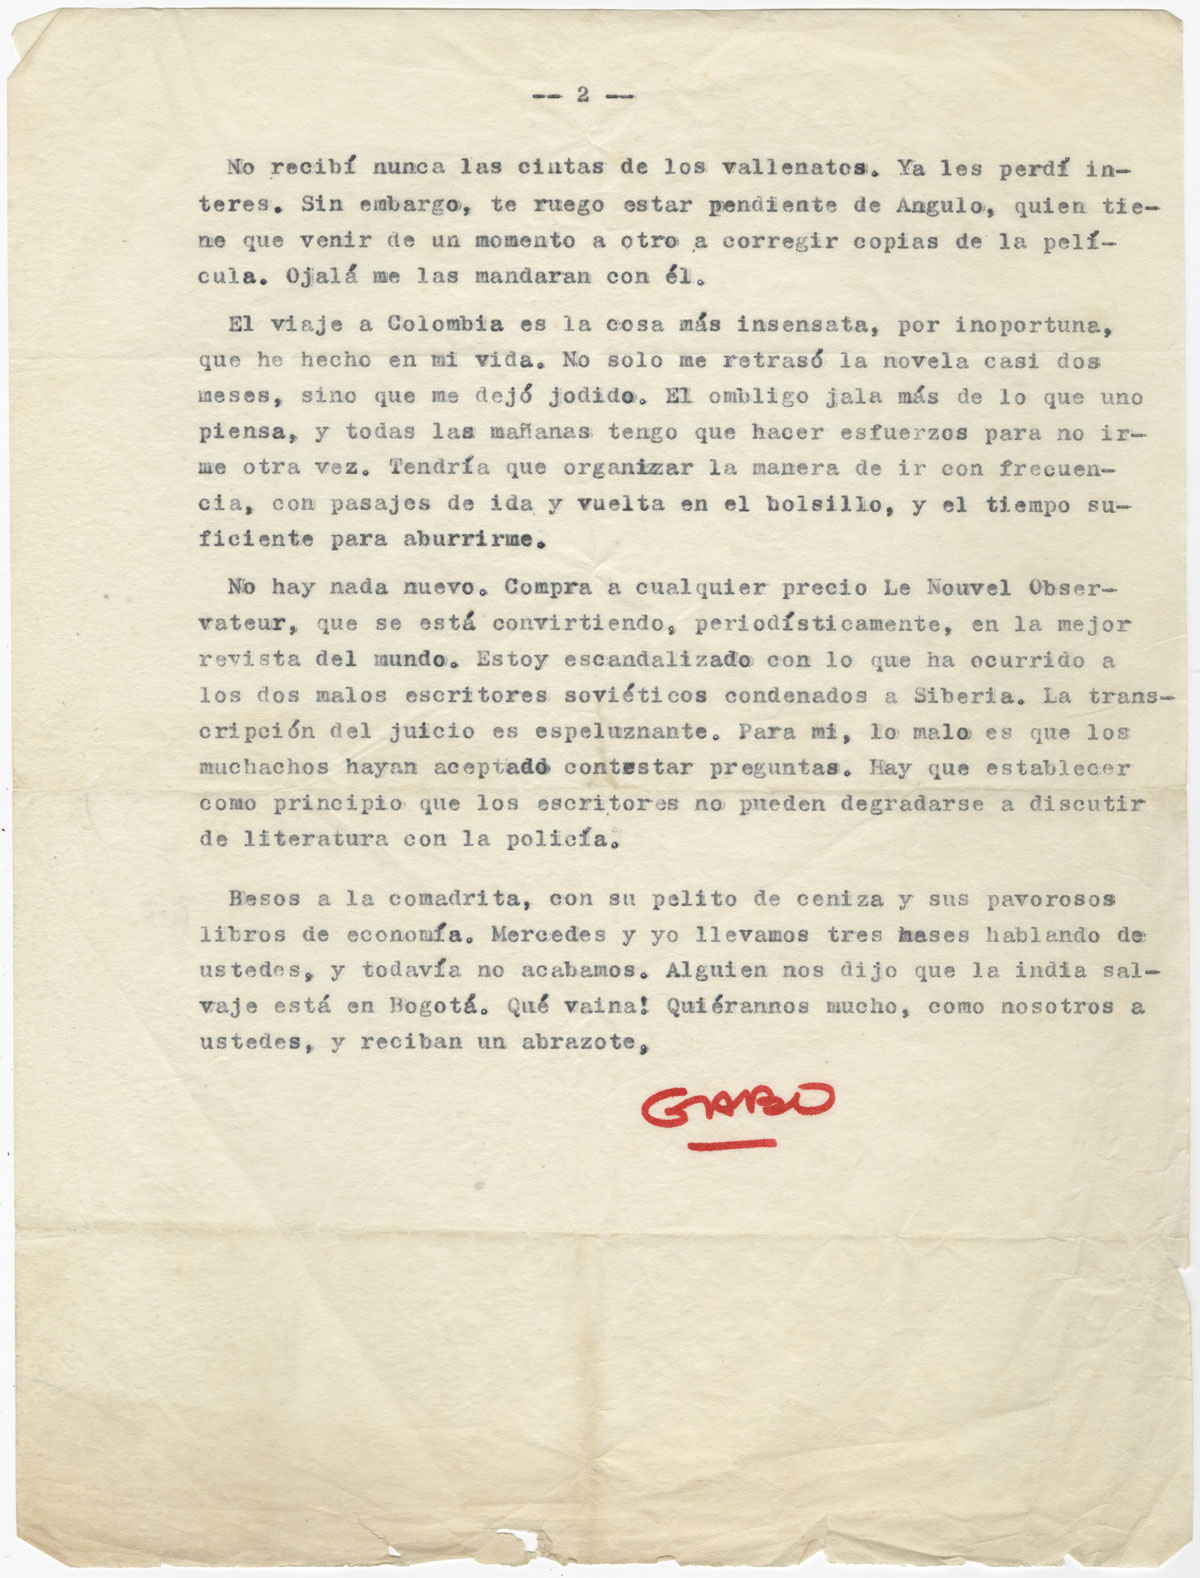 A letter from Gabriel García Márquez to his friend and fellow writer and journalist Plinio Apuleyo Mendoza, June 27 [1966] (page 2).